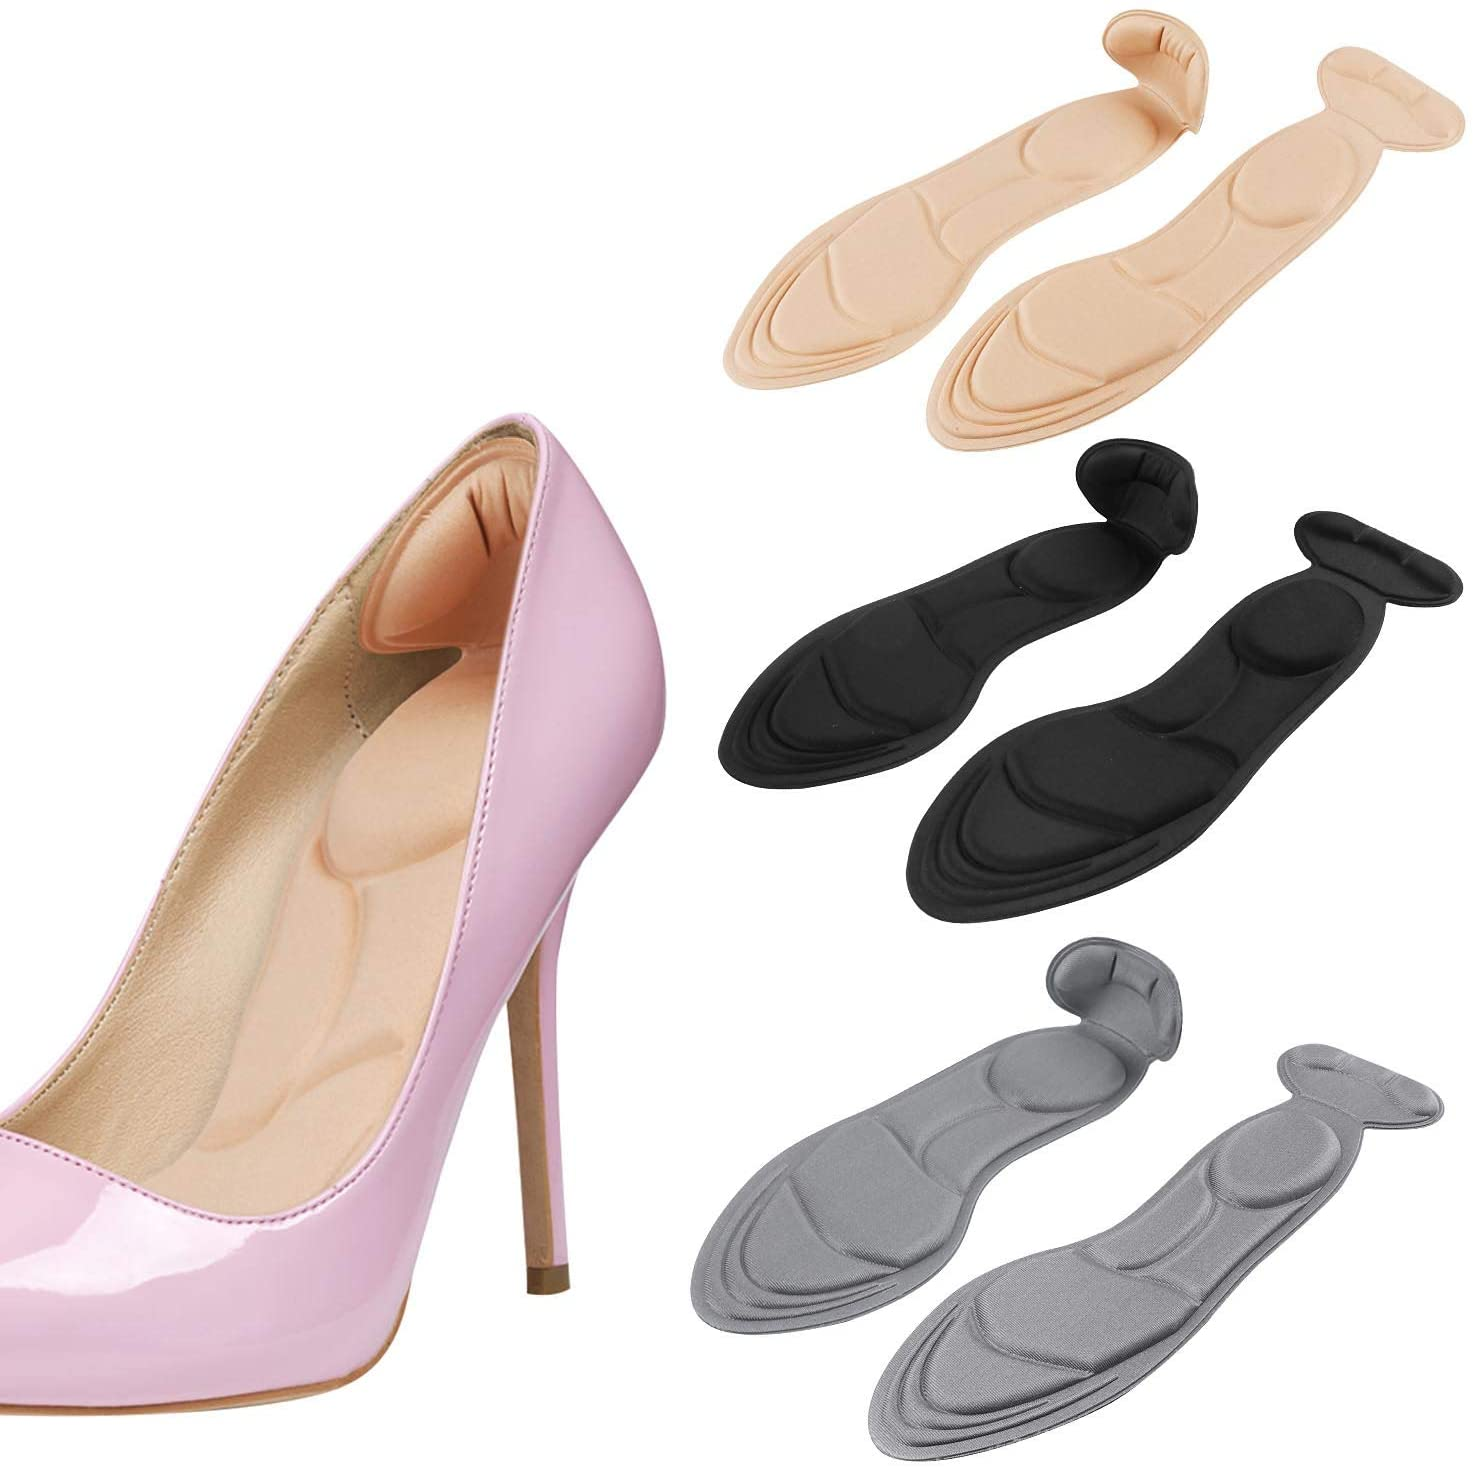 2020 New Heel Insoles, Shoe Insoles, Heel Cushions, Sponge Shoes Pads with High Heel Inserts for Loose Shoes, Metatarsal Pain, Arch Pain, Foot Pain, Heel Sore and Heel Spurs (Women 4.5-9.5)